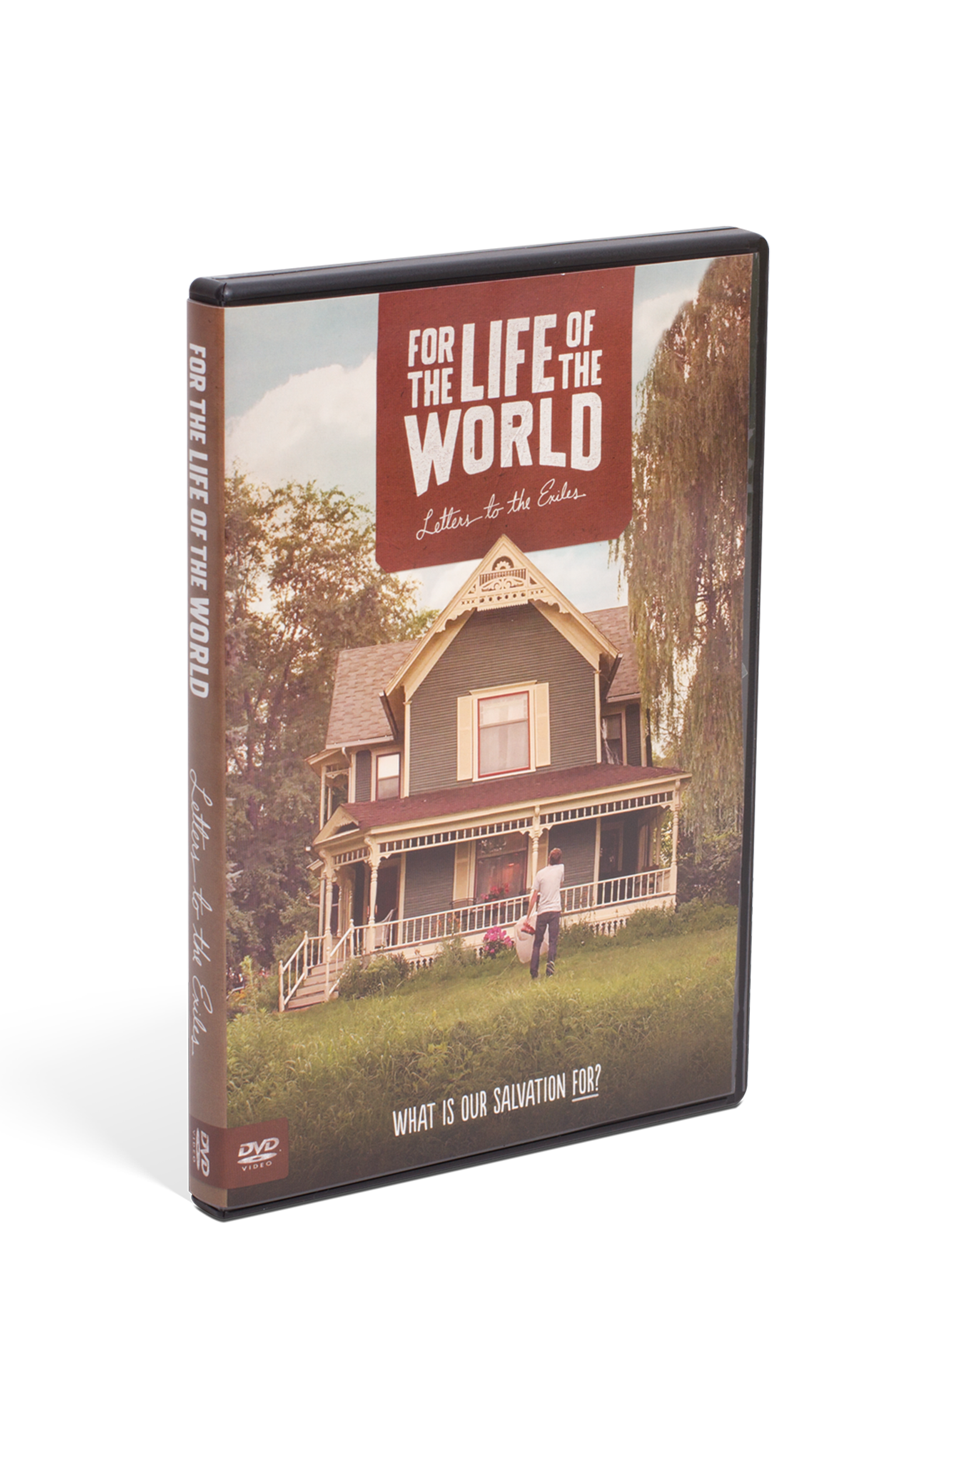 For the Life of the World Feature Film